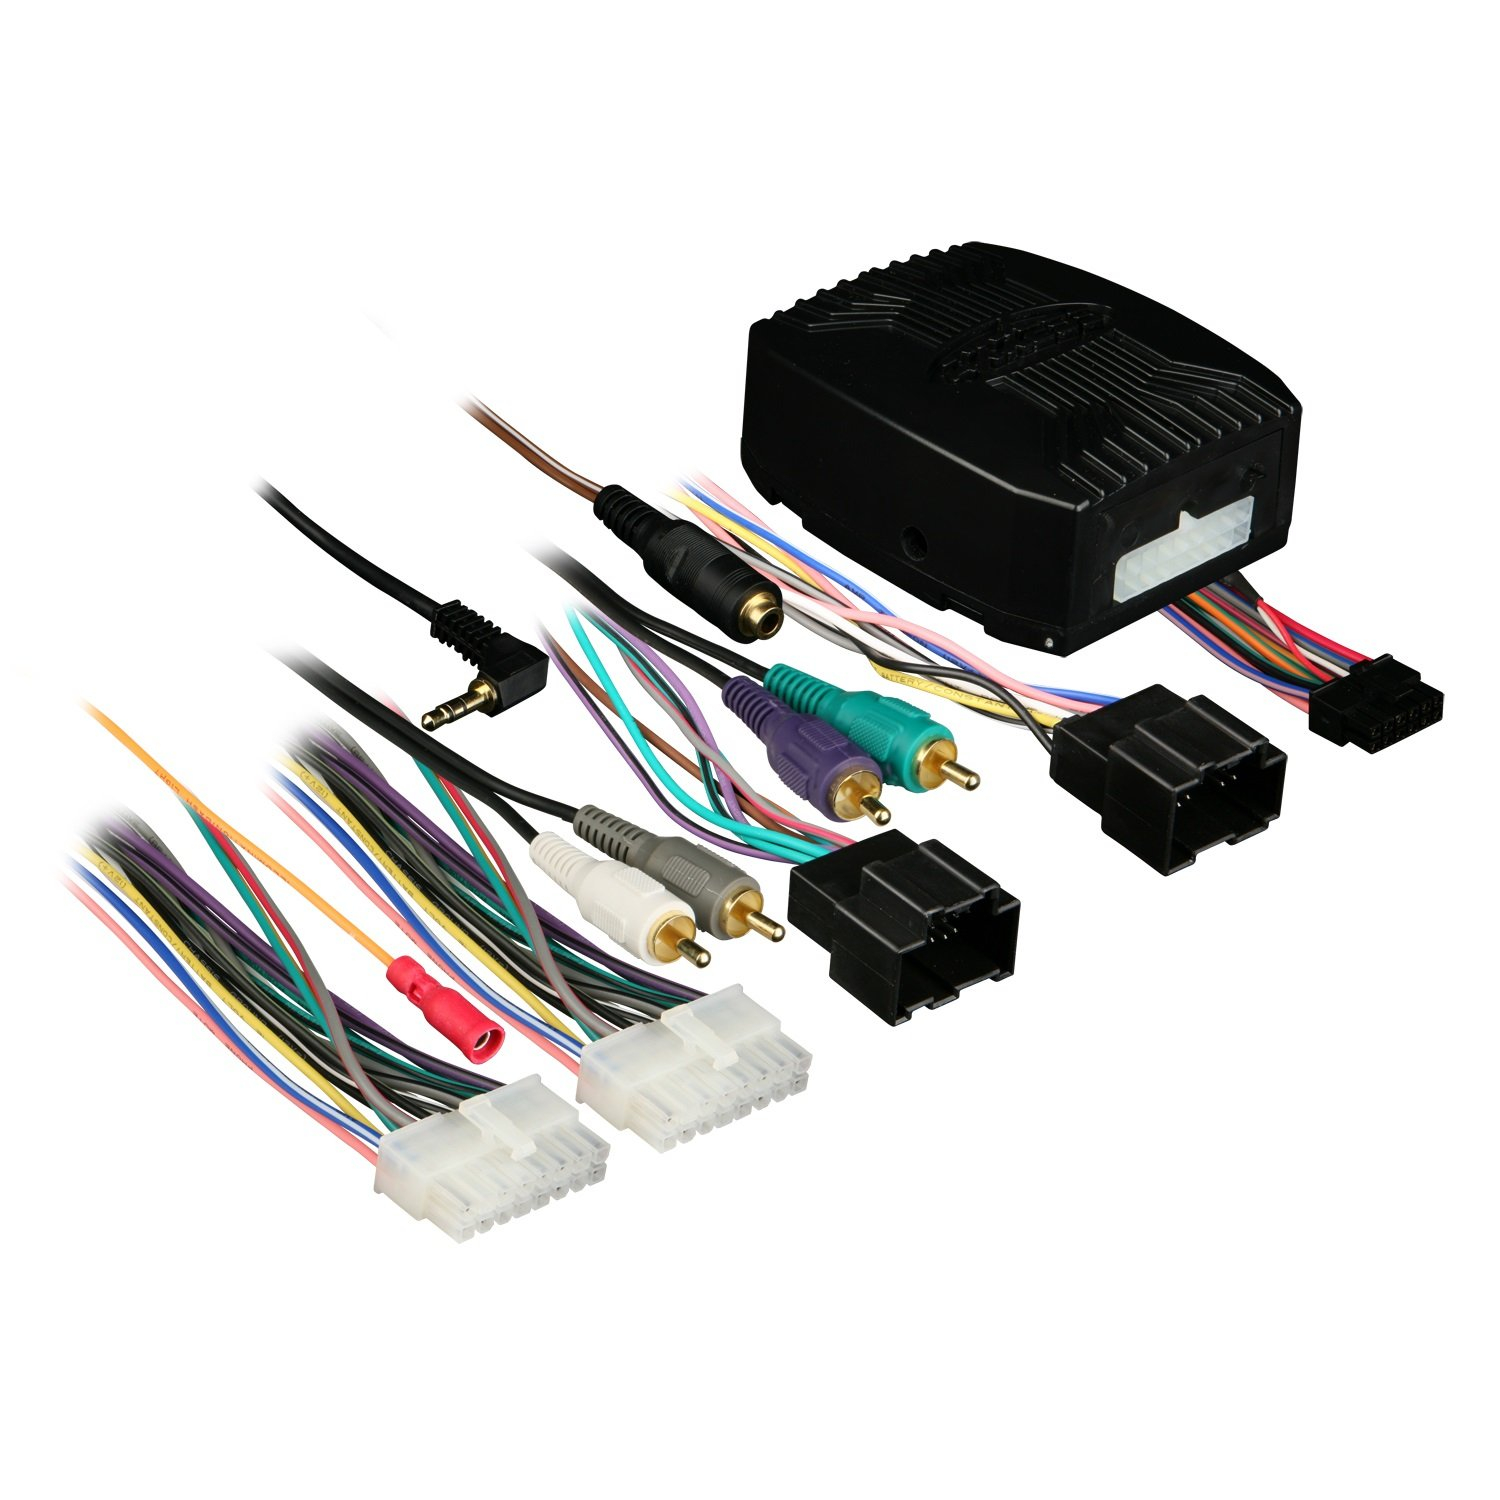 71%2BiotXT8ML._SL1500_ amazon com metra gmos lan 04 gmos lan interface gm 06 08 axxess gmos 04 wiring harness at gsmportal.co